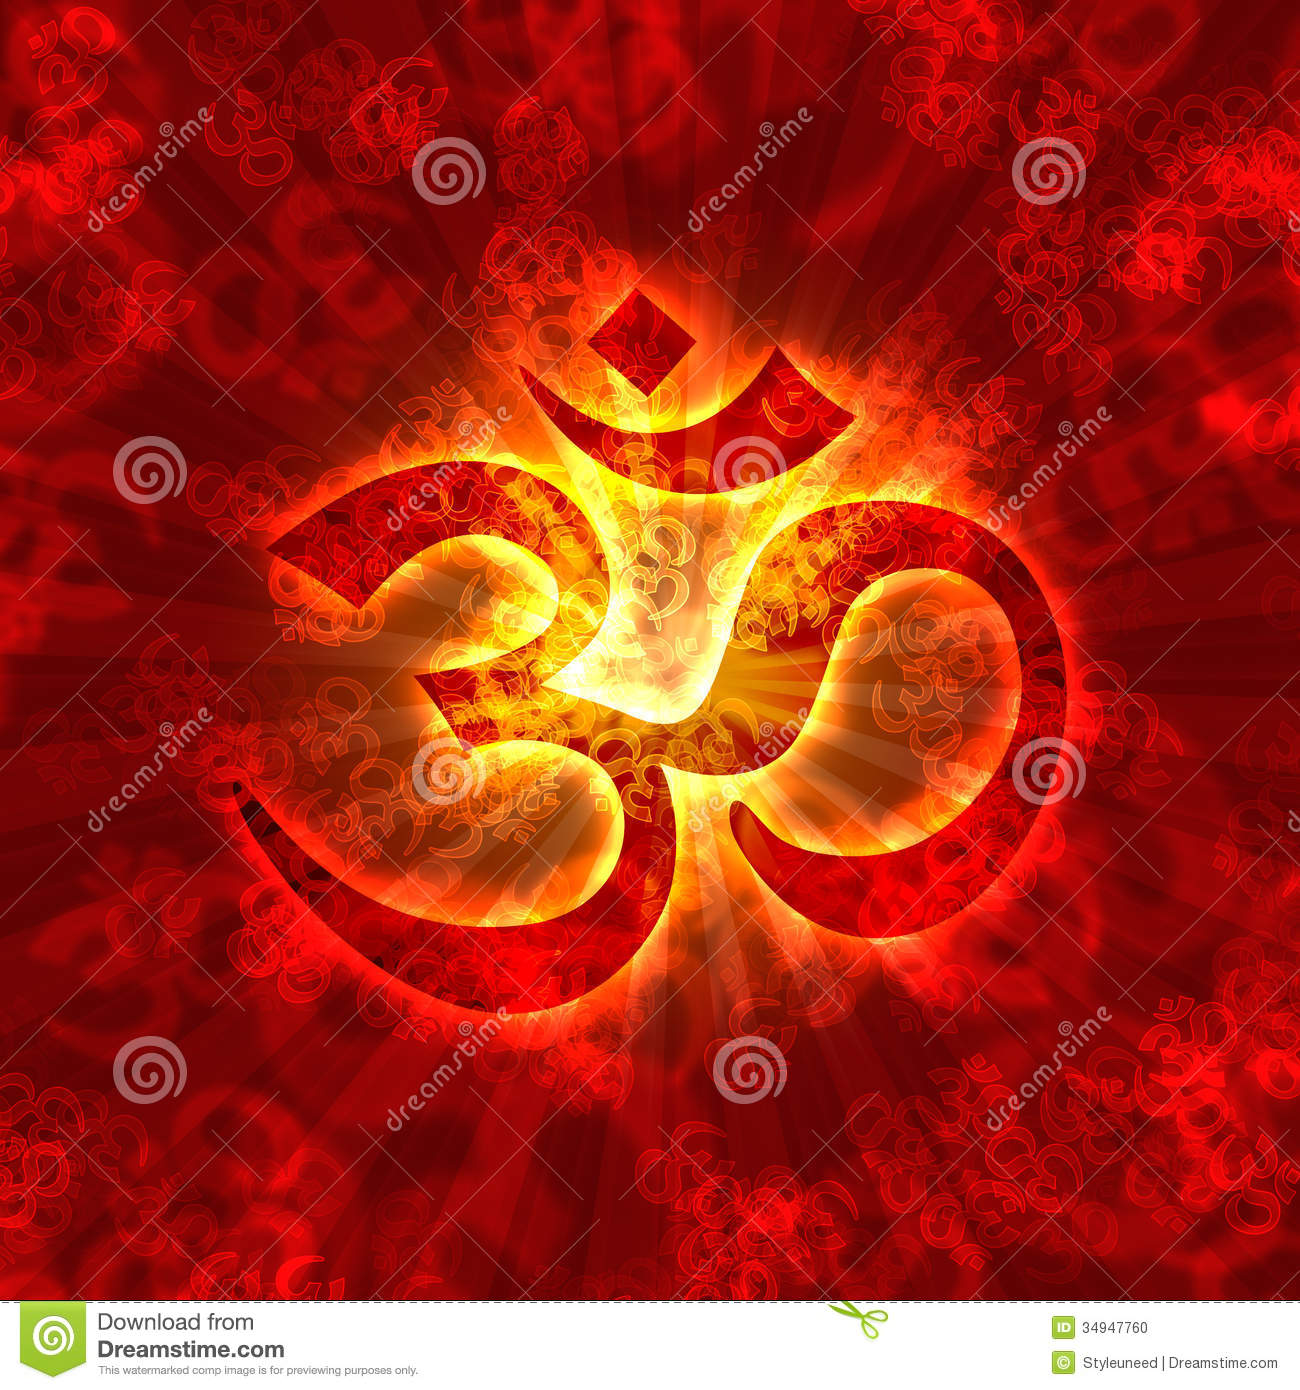 Om Symbol Illustration Aum Holy Buddhist Sign Enlightenment on aum symbols om graphics hindu religious